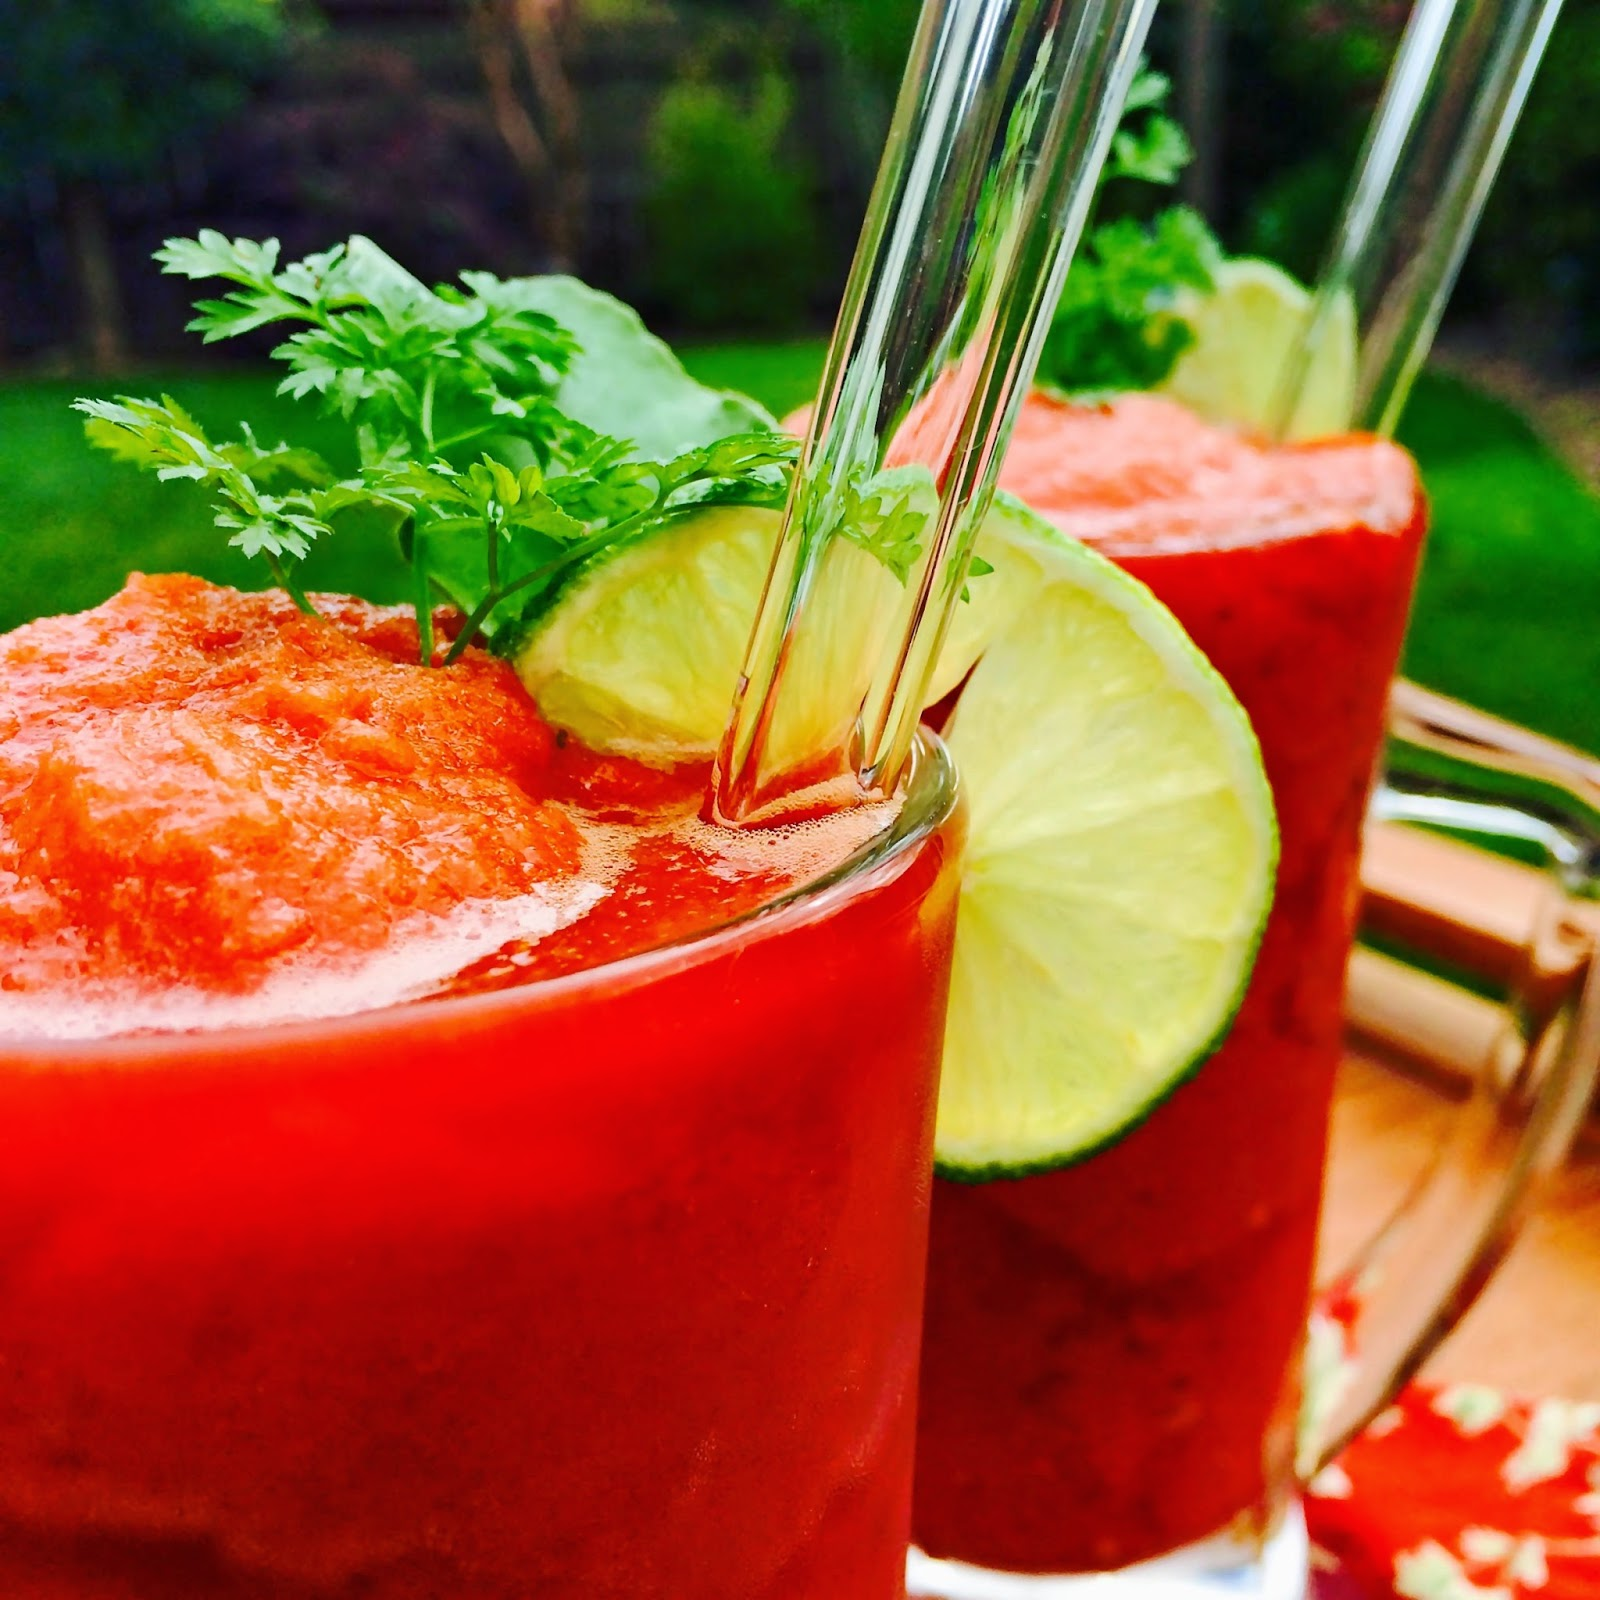 tomato, glass straw, beverage, smoothie, savory, recipe